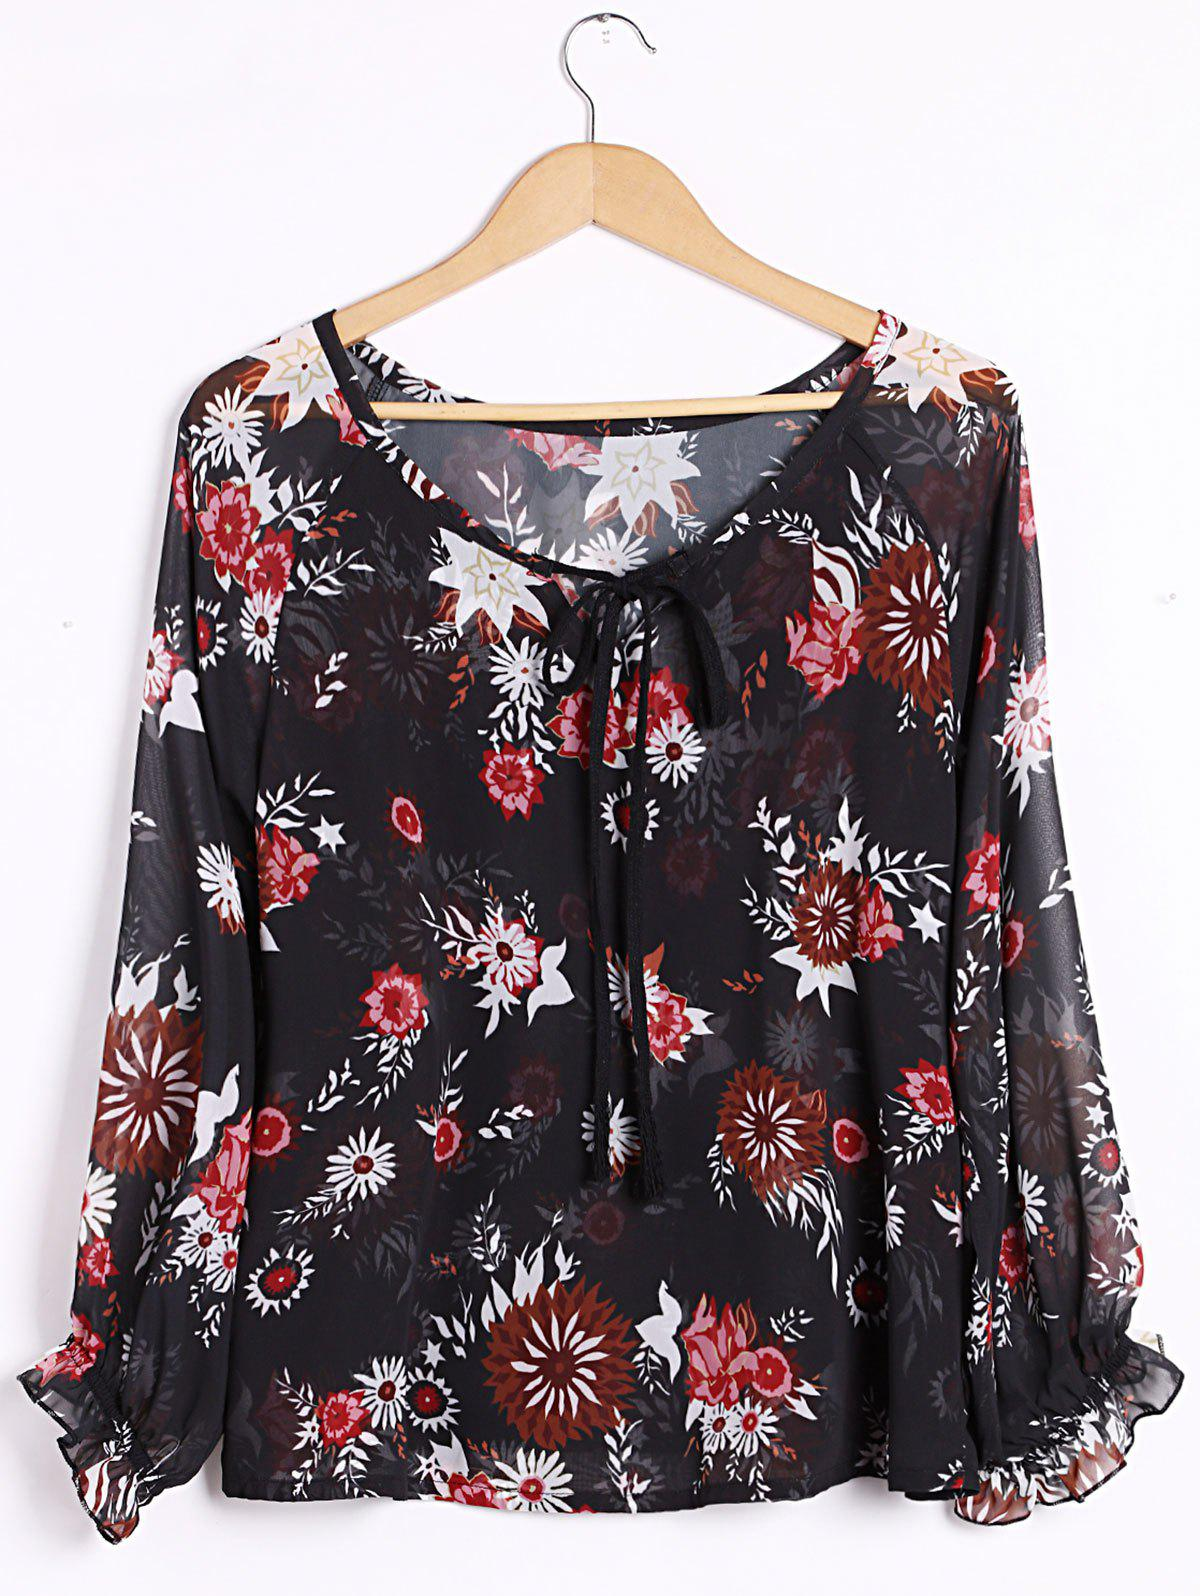 Sexy Women's Plunging Neck Long Sleeve Floral Print Blouse - BLACK XL